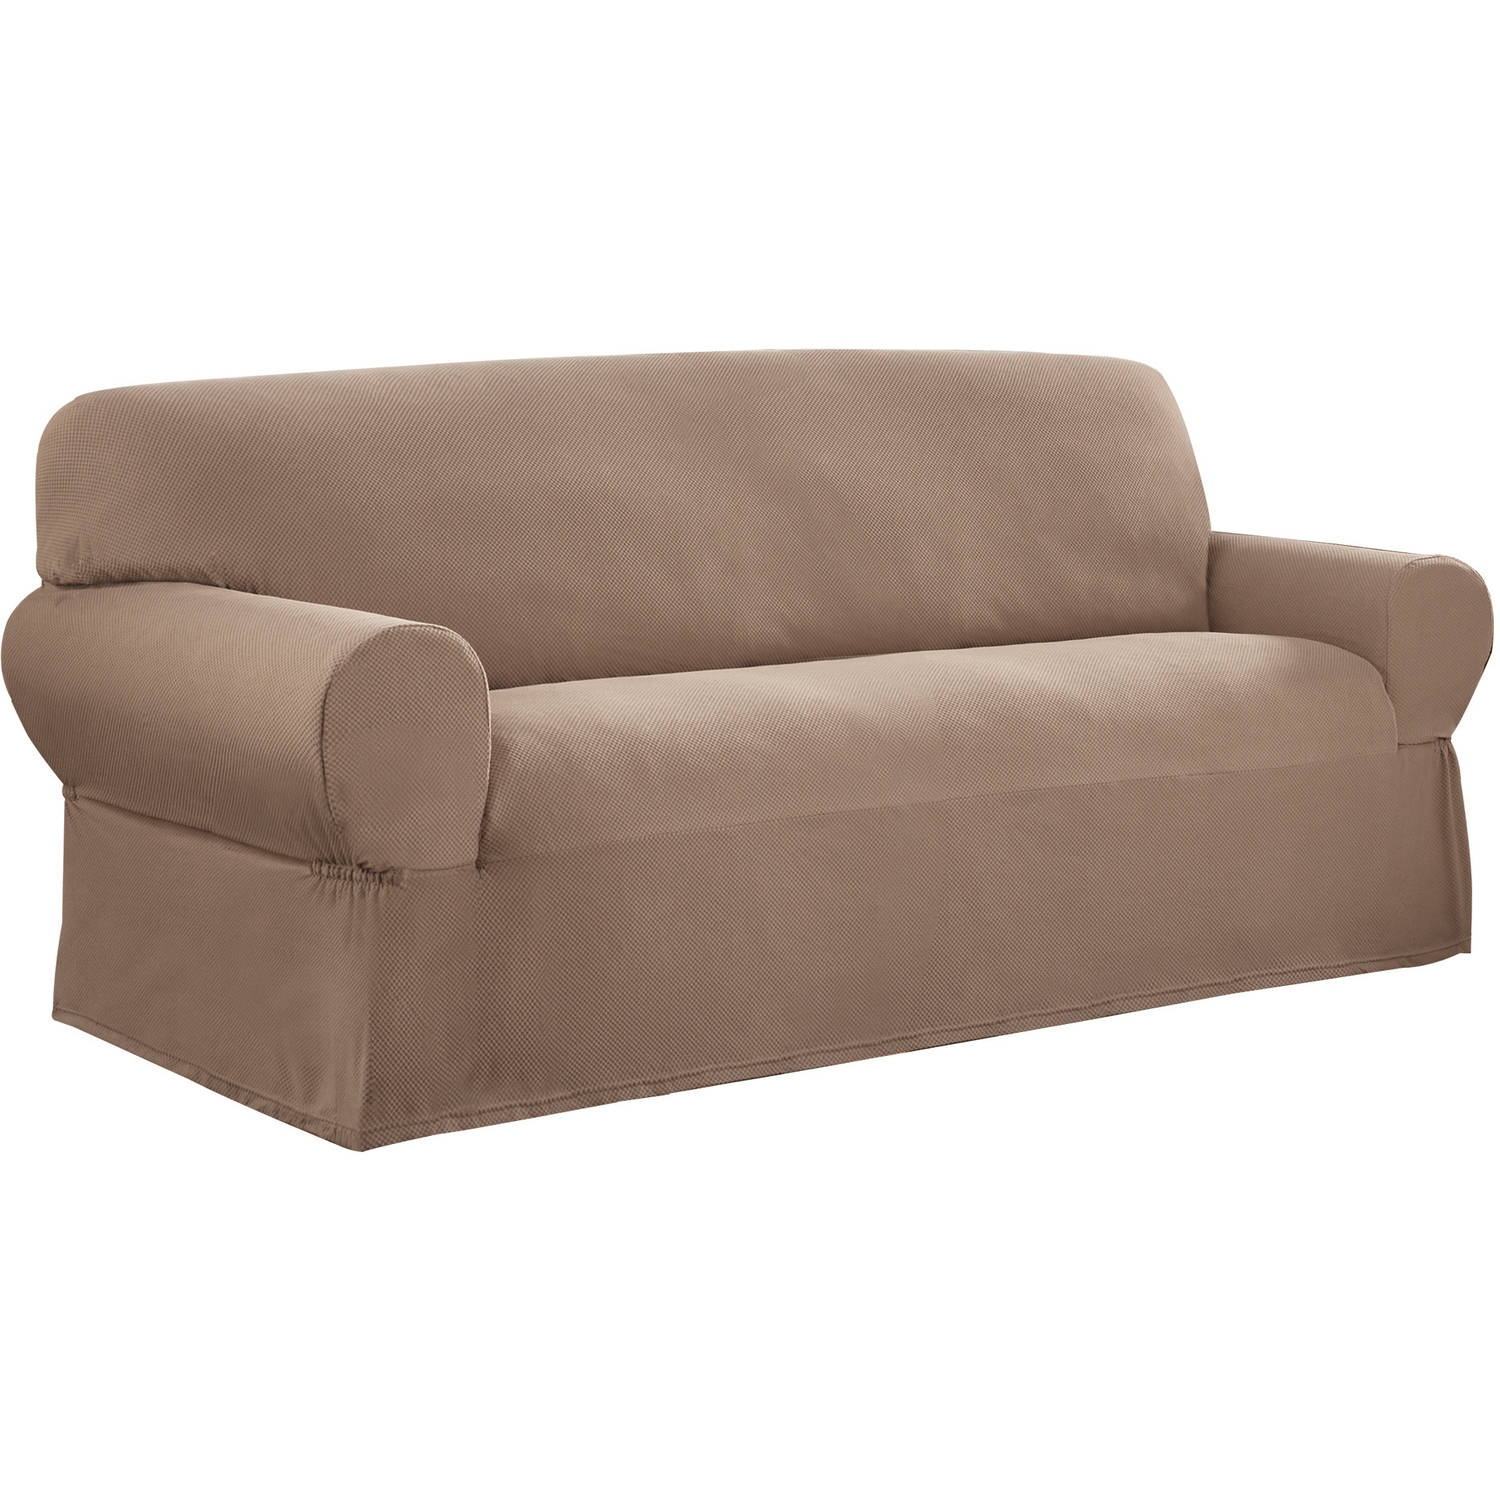 Mainstays 1 Piece Stretch Fabric Sofa Slipcover Walmart With Covers For Sofas And Chairs (View 9 of 15)